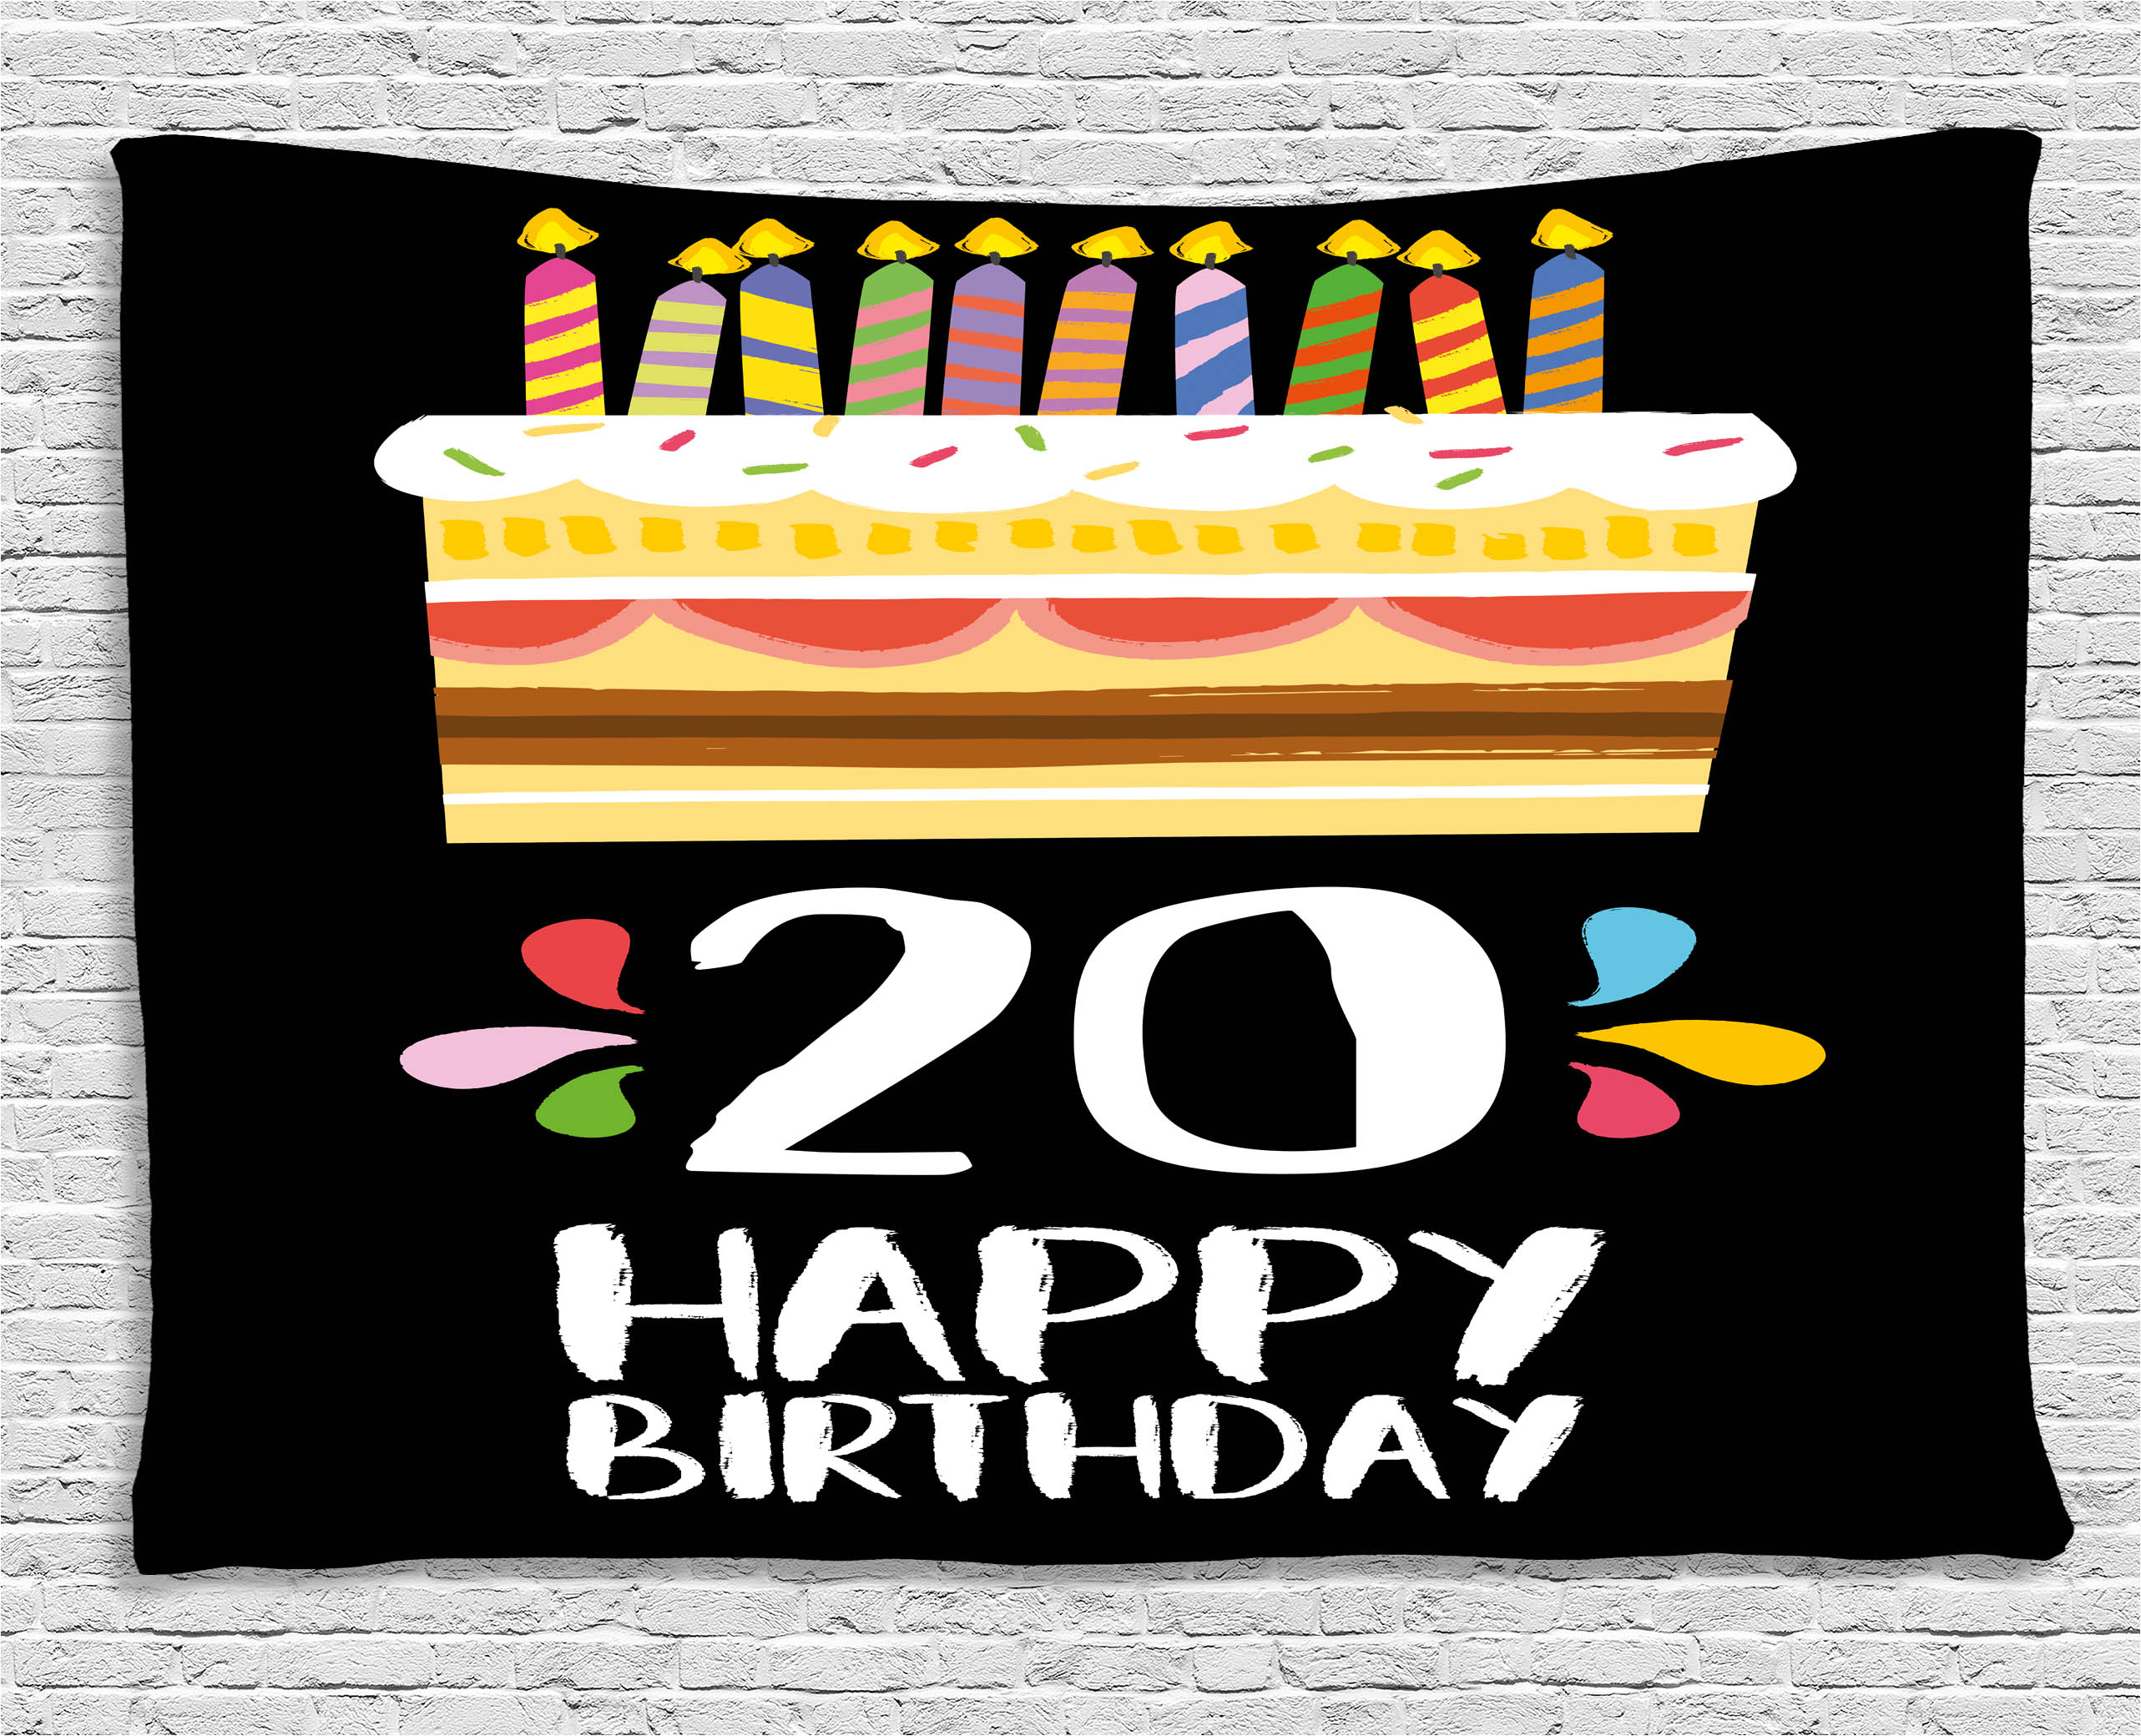 20th Birthday Decorations Tapestry Vintage Cartoon Style Party Cake With Candles On Black Backdrop